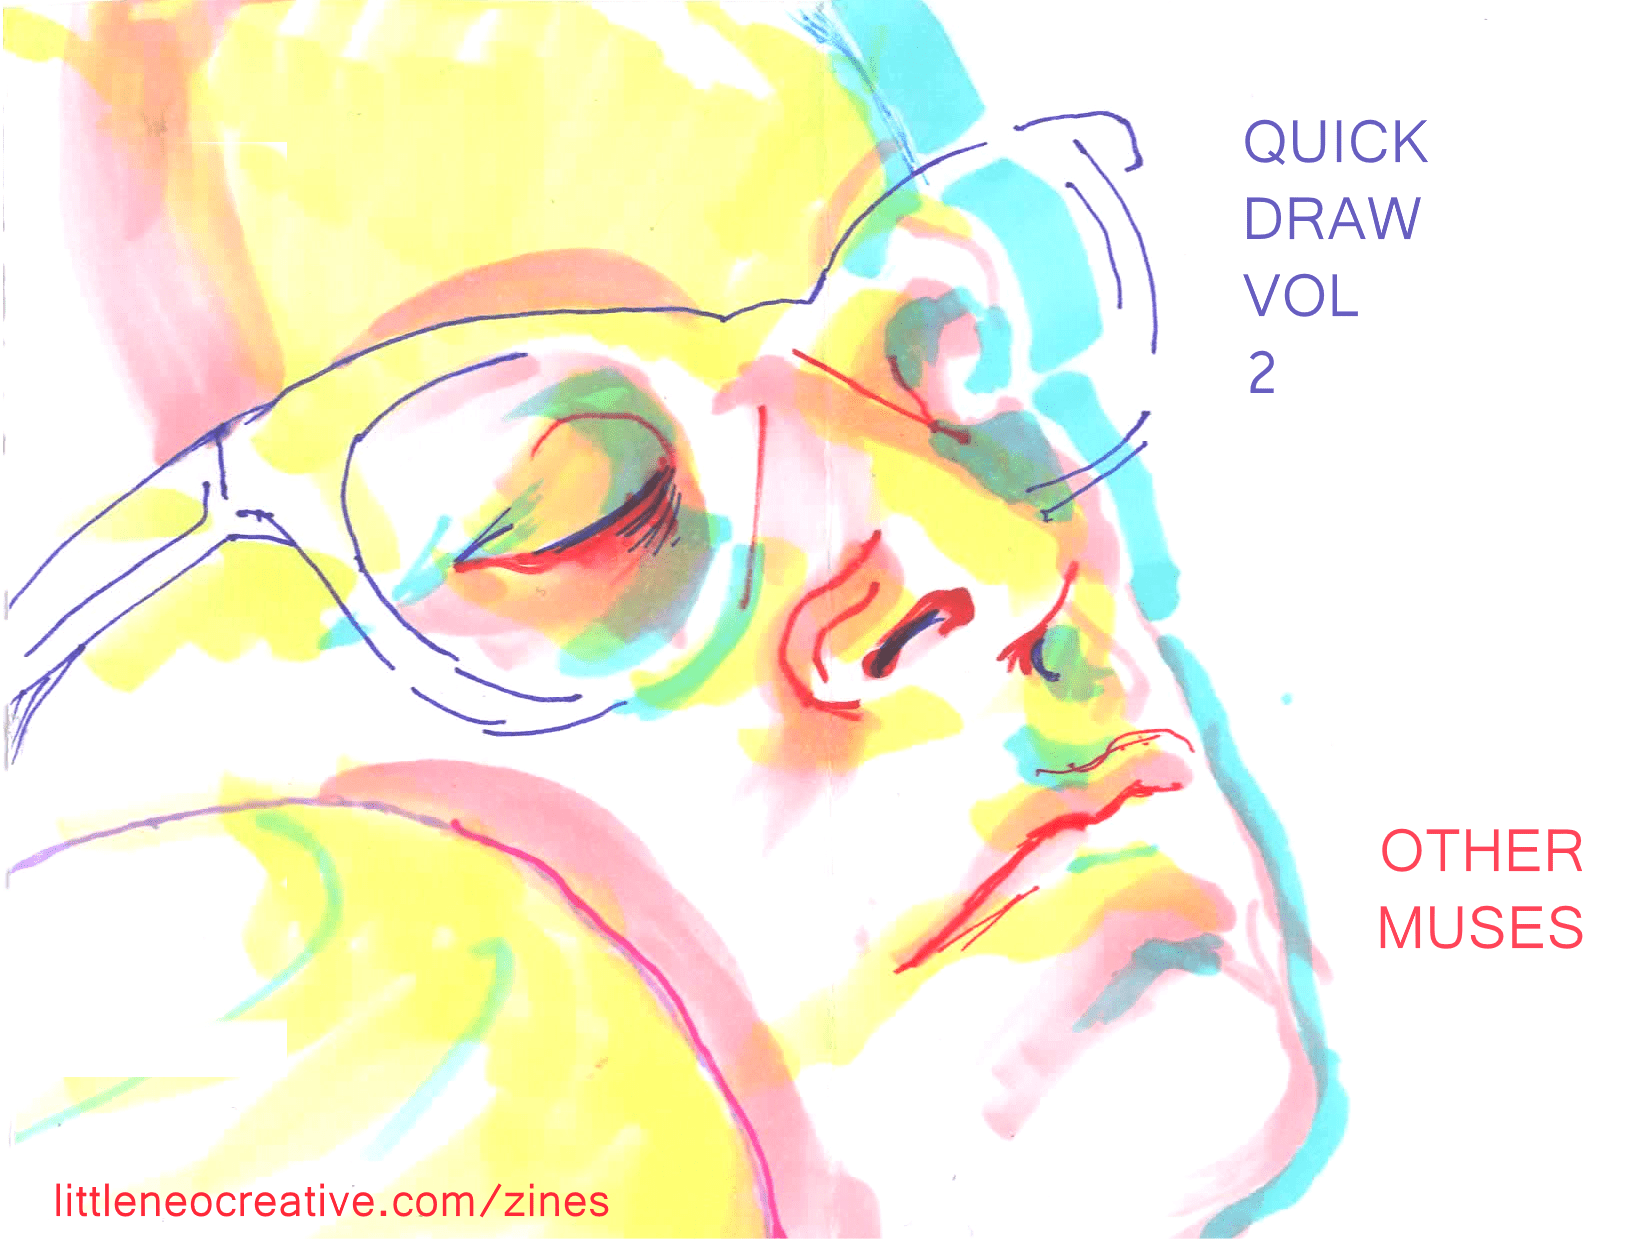 QUICK DRAW VOL 2 - OTHER MUSES - pages 1 and 8 COVER